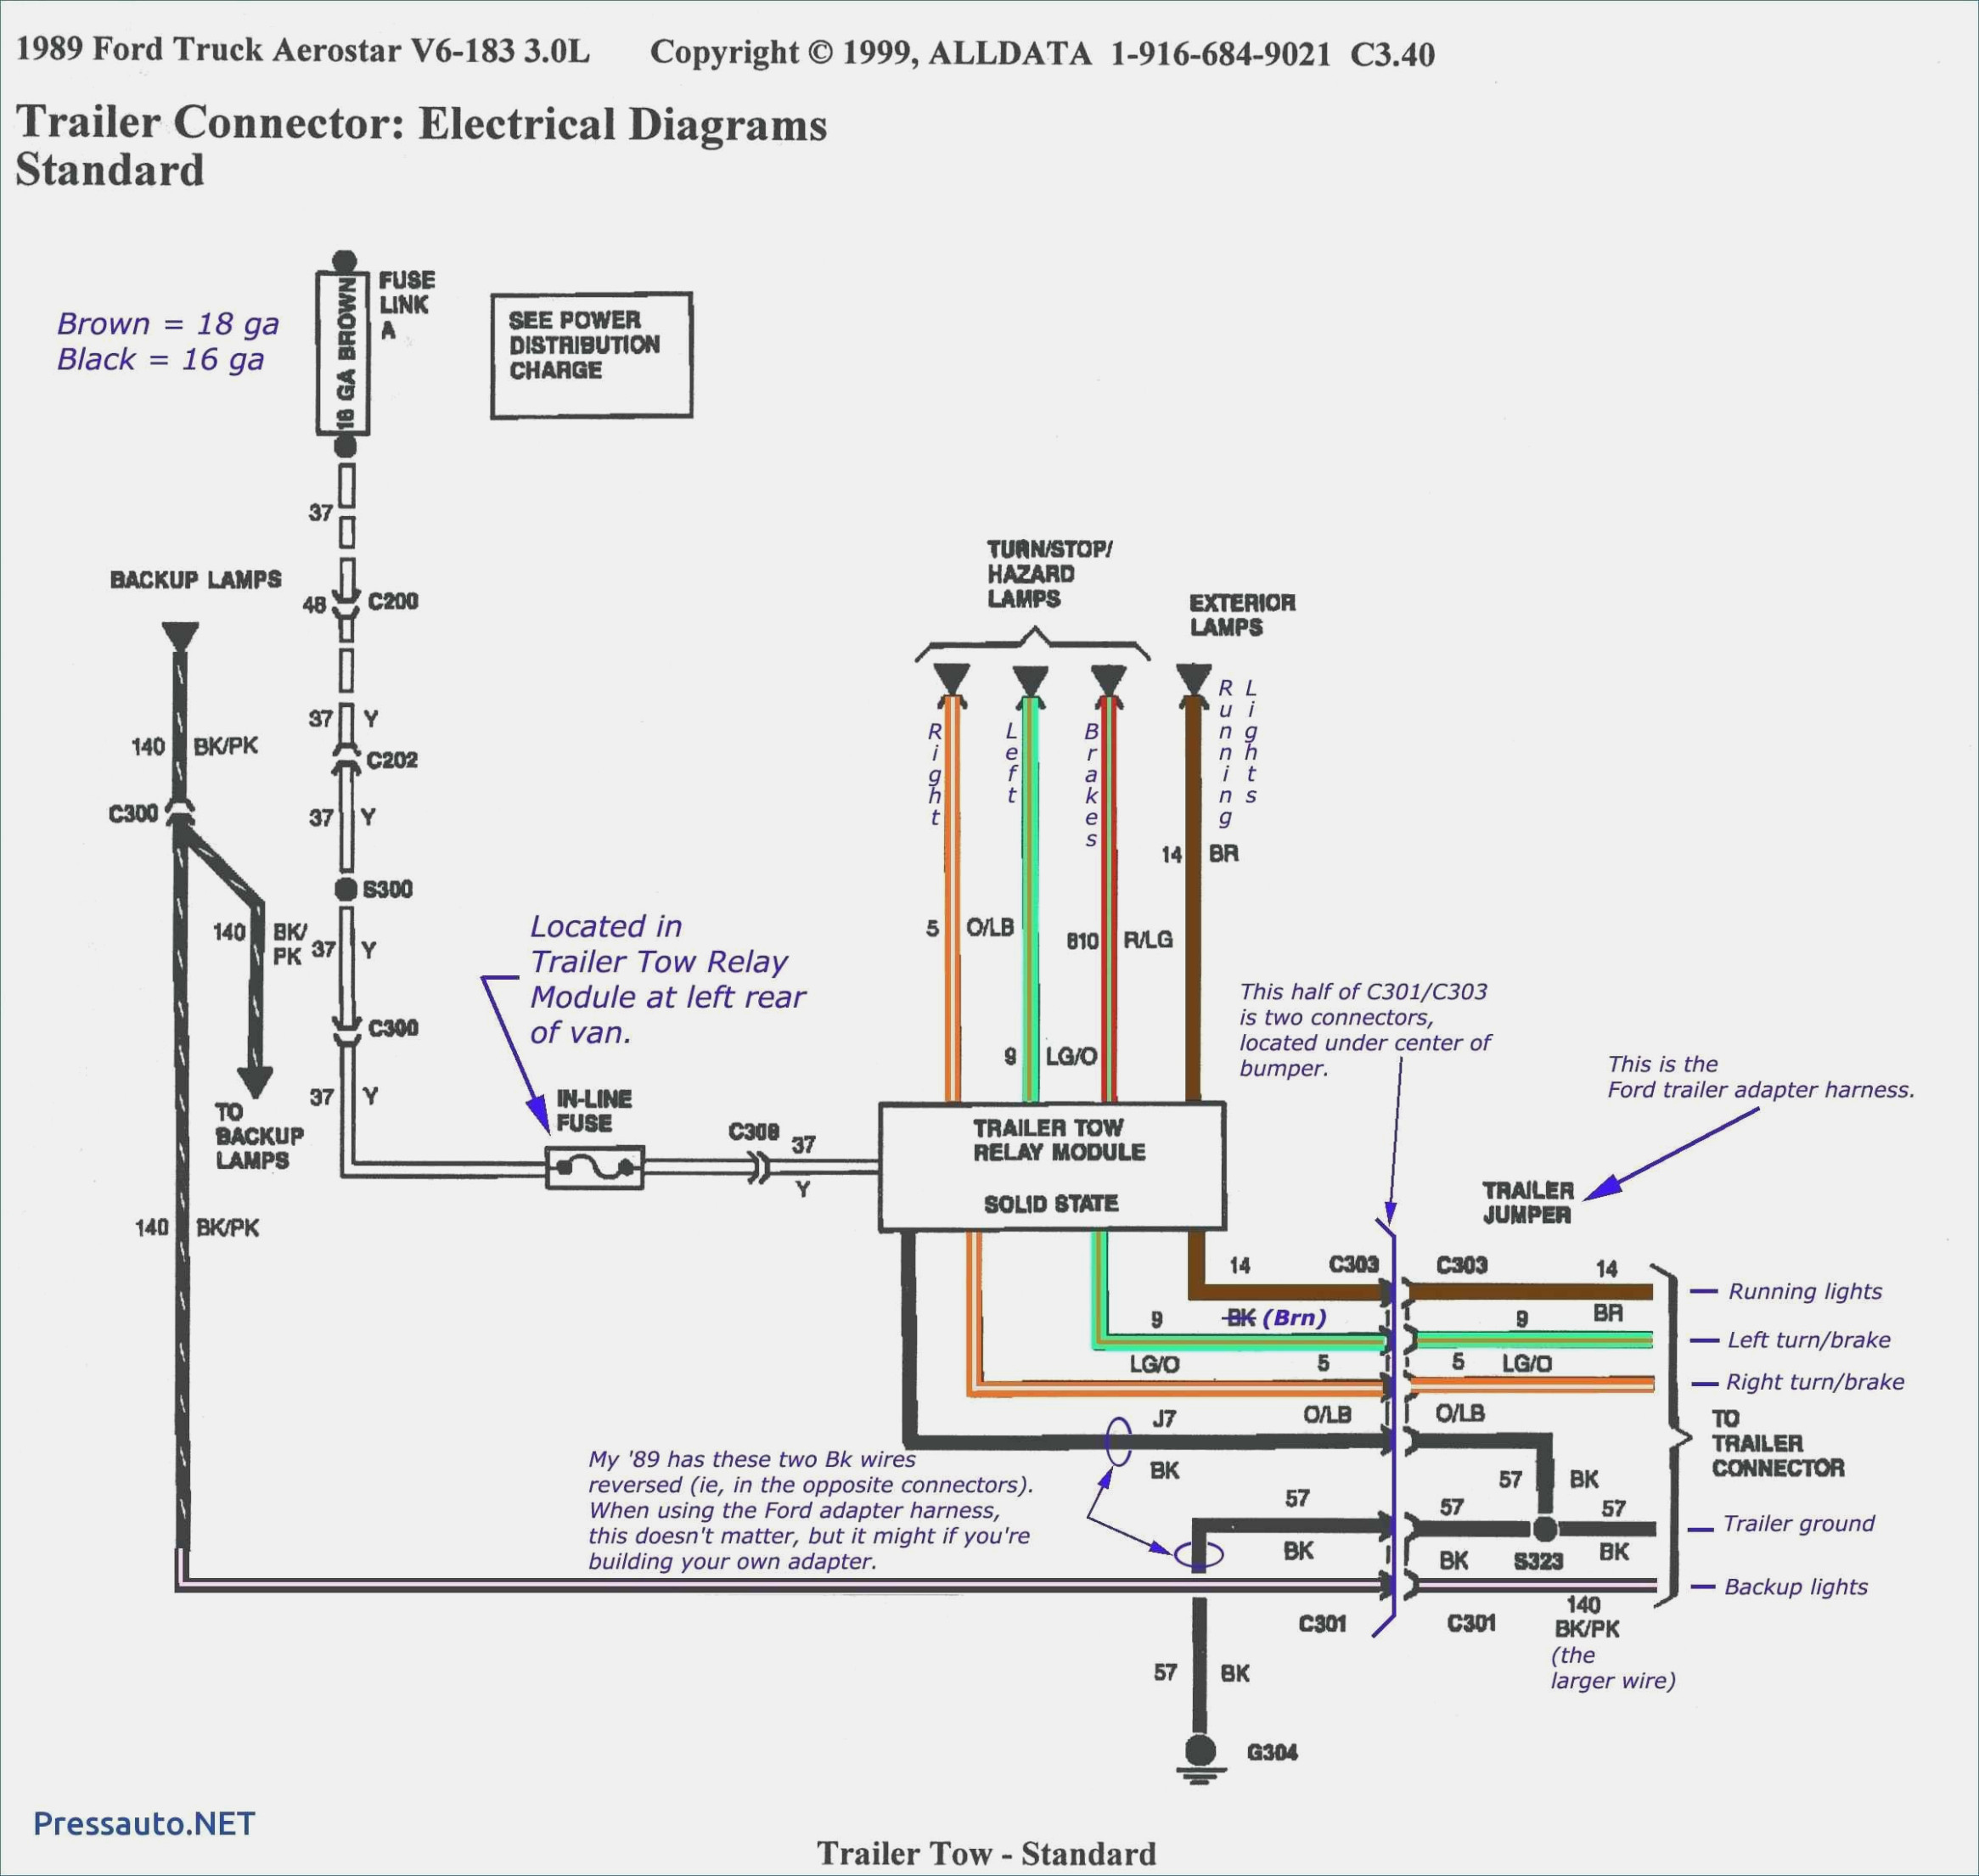 Jayco Satellite Wiring Diagram on pop up camper lift system diagram, jayco owner's manual, jayco battery wiring, jayco connector diagram, jayco plumbing diagram, jayco pop-up wiring,